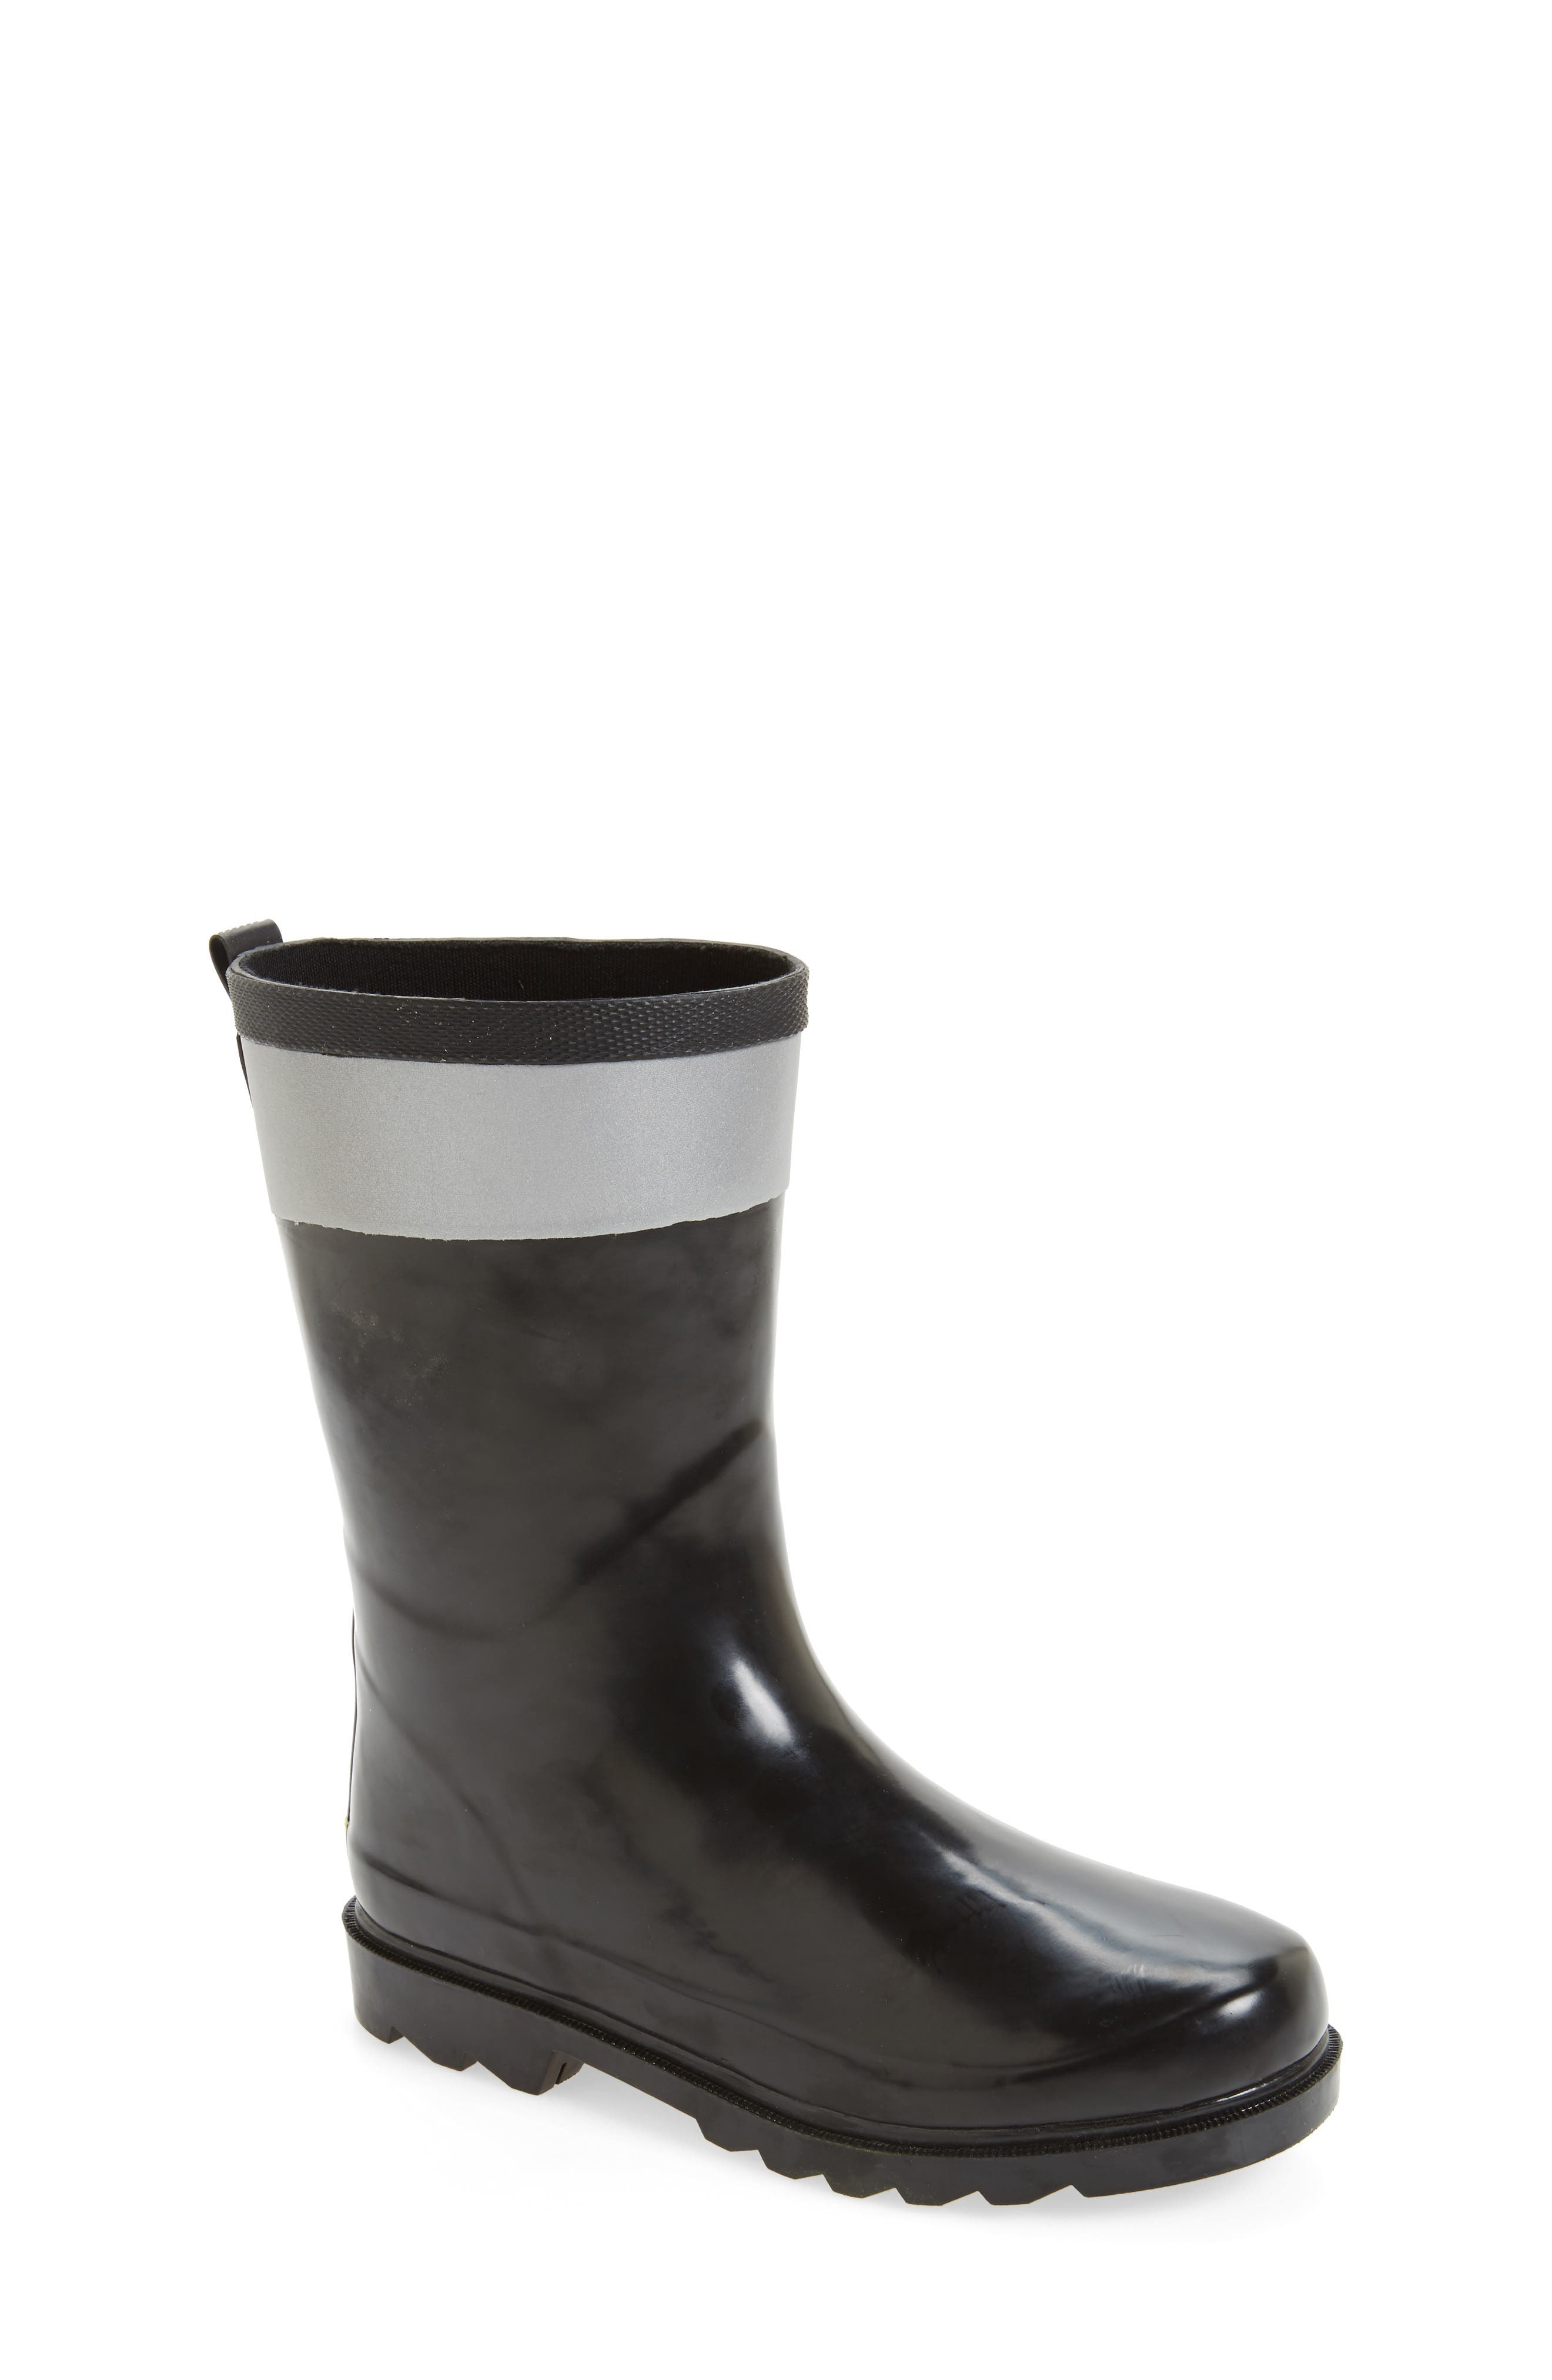 Alternate Image 1 Selected - Western Chief Reflective Rain Boot (Toddler, Little Kid & Big Kid)